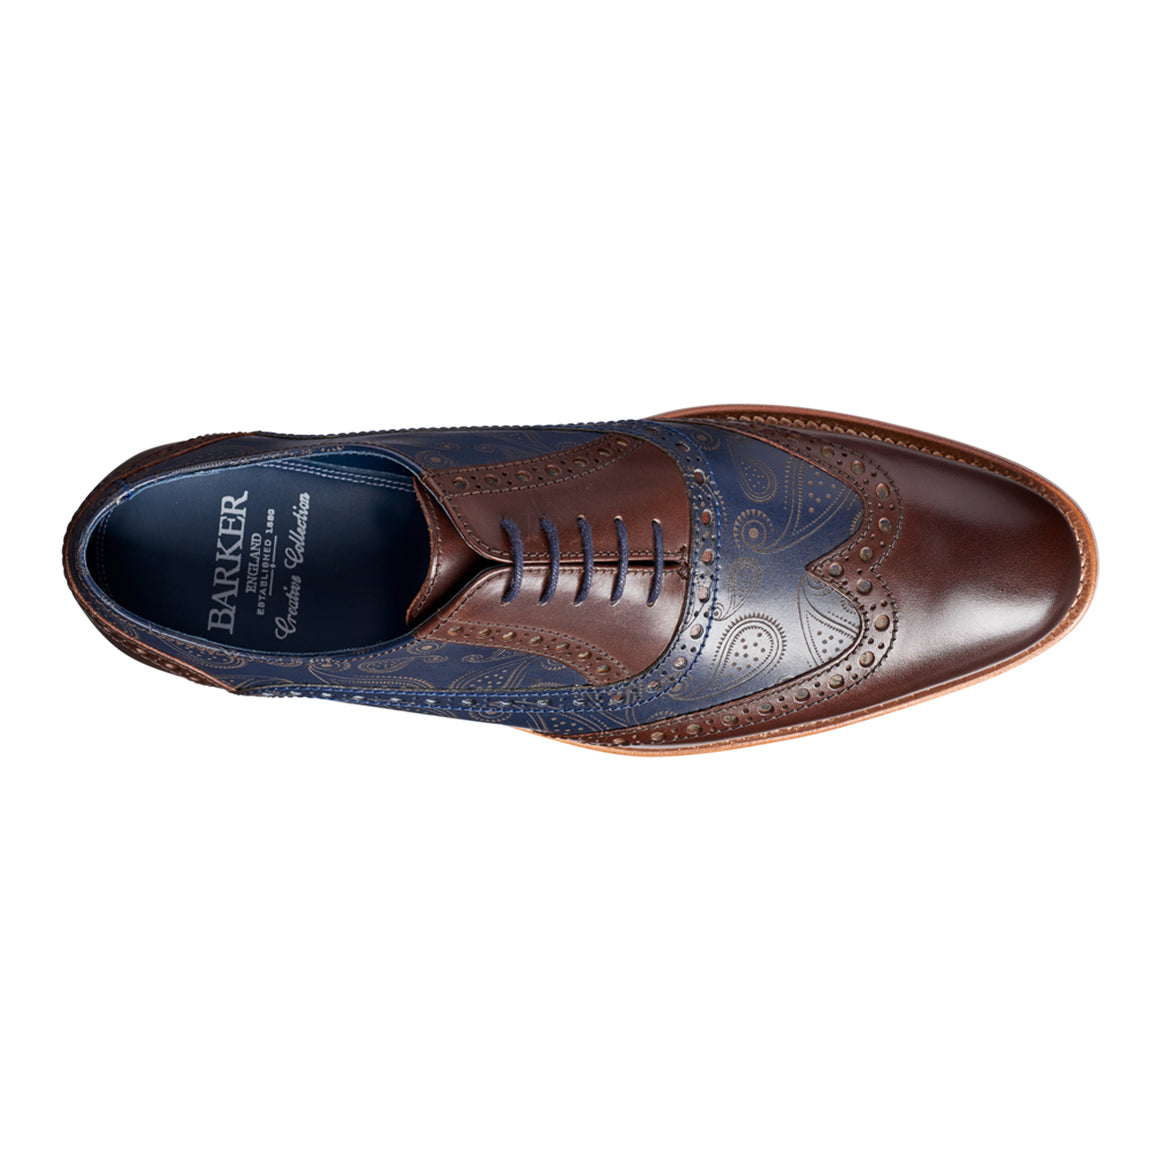 Grant Paisley Hand-painted Leather Brogue for Men in in Walnut and Navy